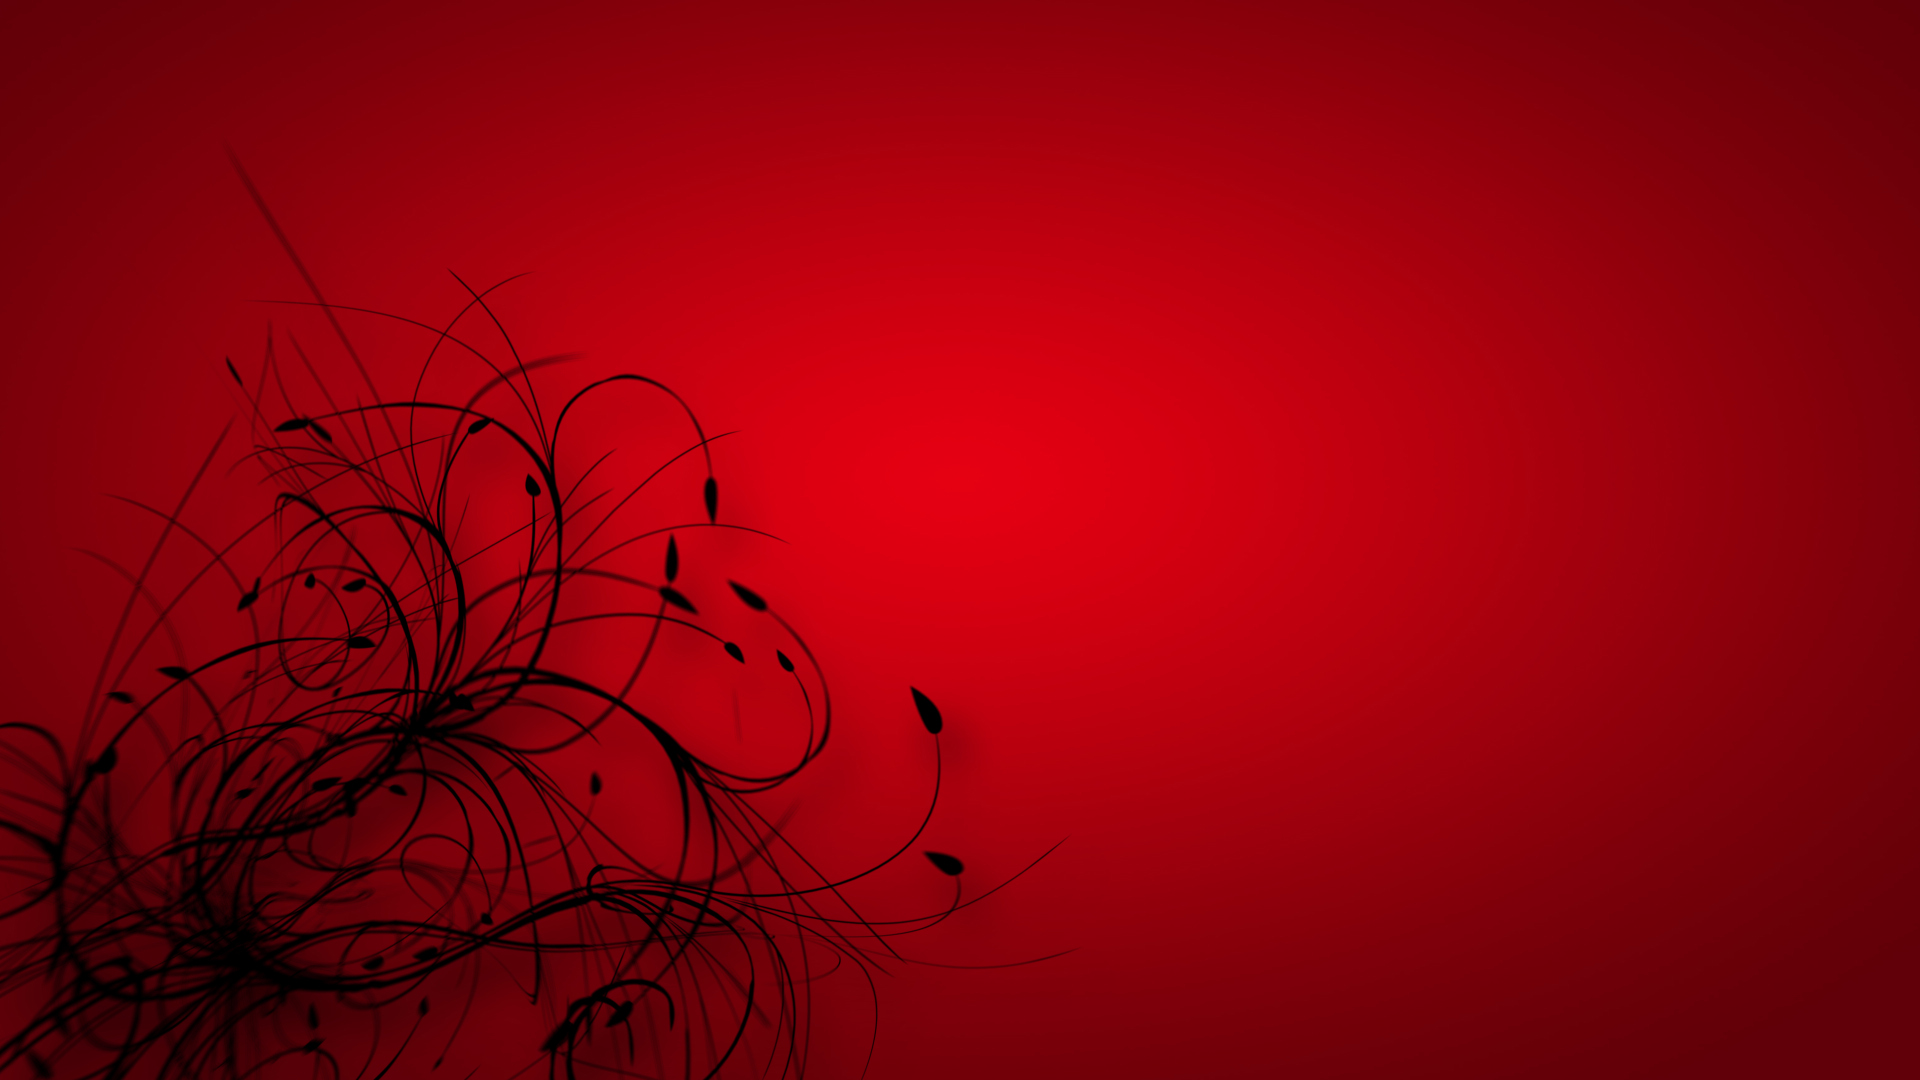 file name red wallpaper hd 1920a—1080